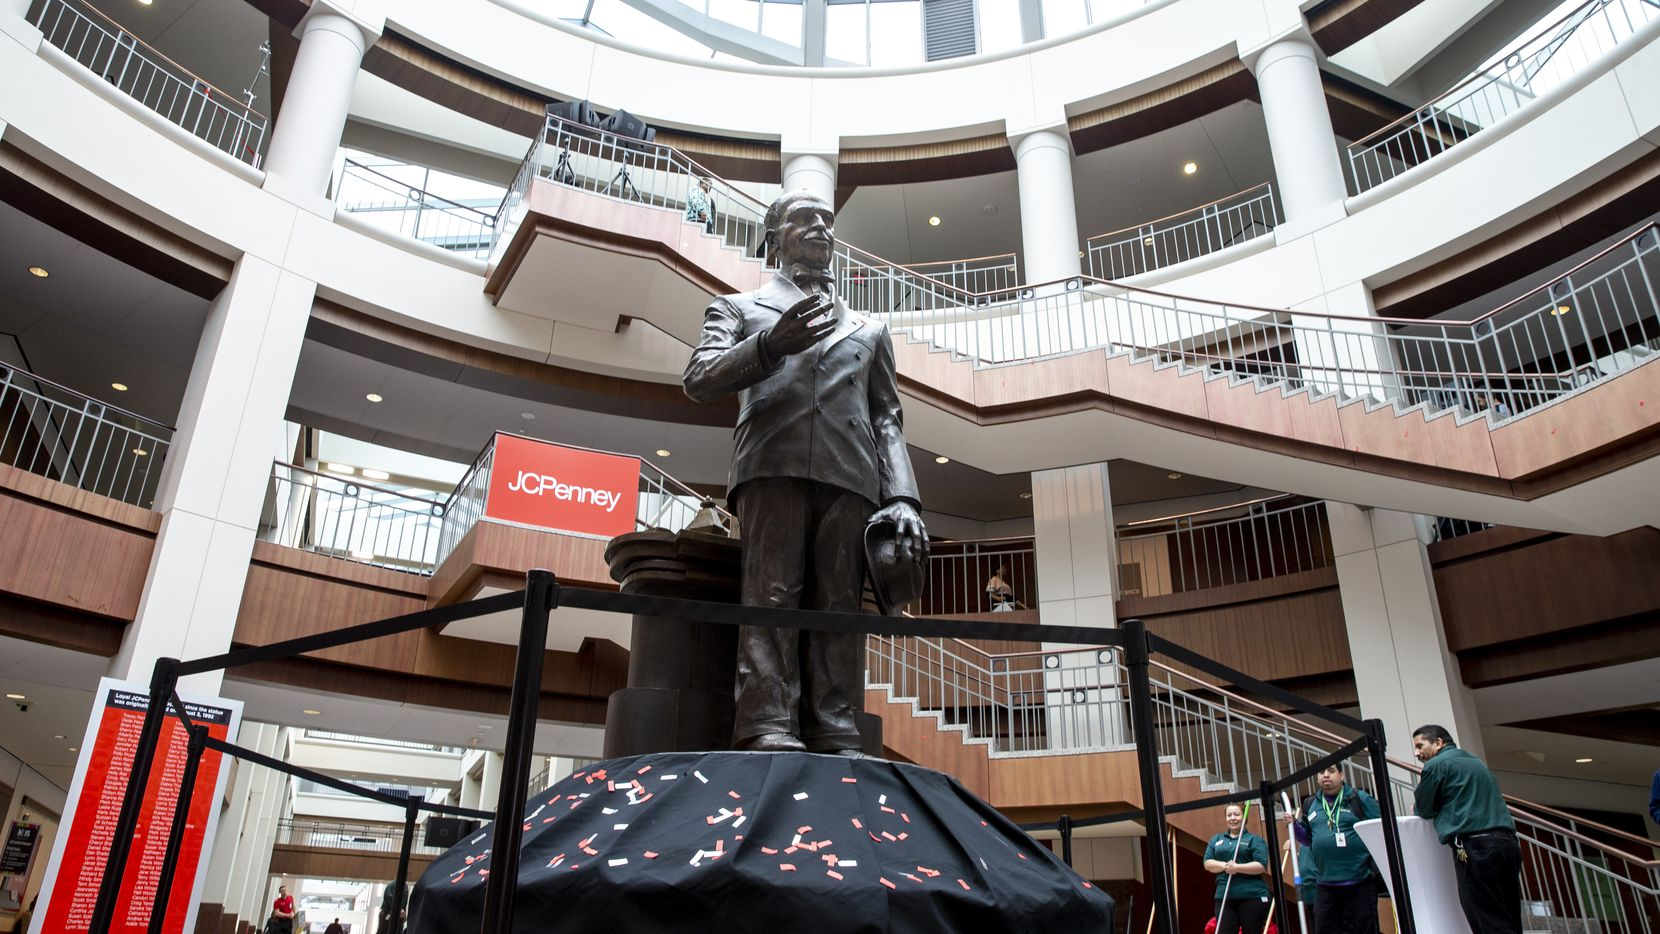 The James Cash Penney statue had been in the main atrium of 6501 Legacy Drive in Plano for almost three decades. The bronze statue was moved to the northside atrium of the campus two years ago. Penney needed less space at that point and had moved into that side of the campus after it sold the property.